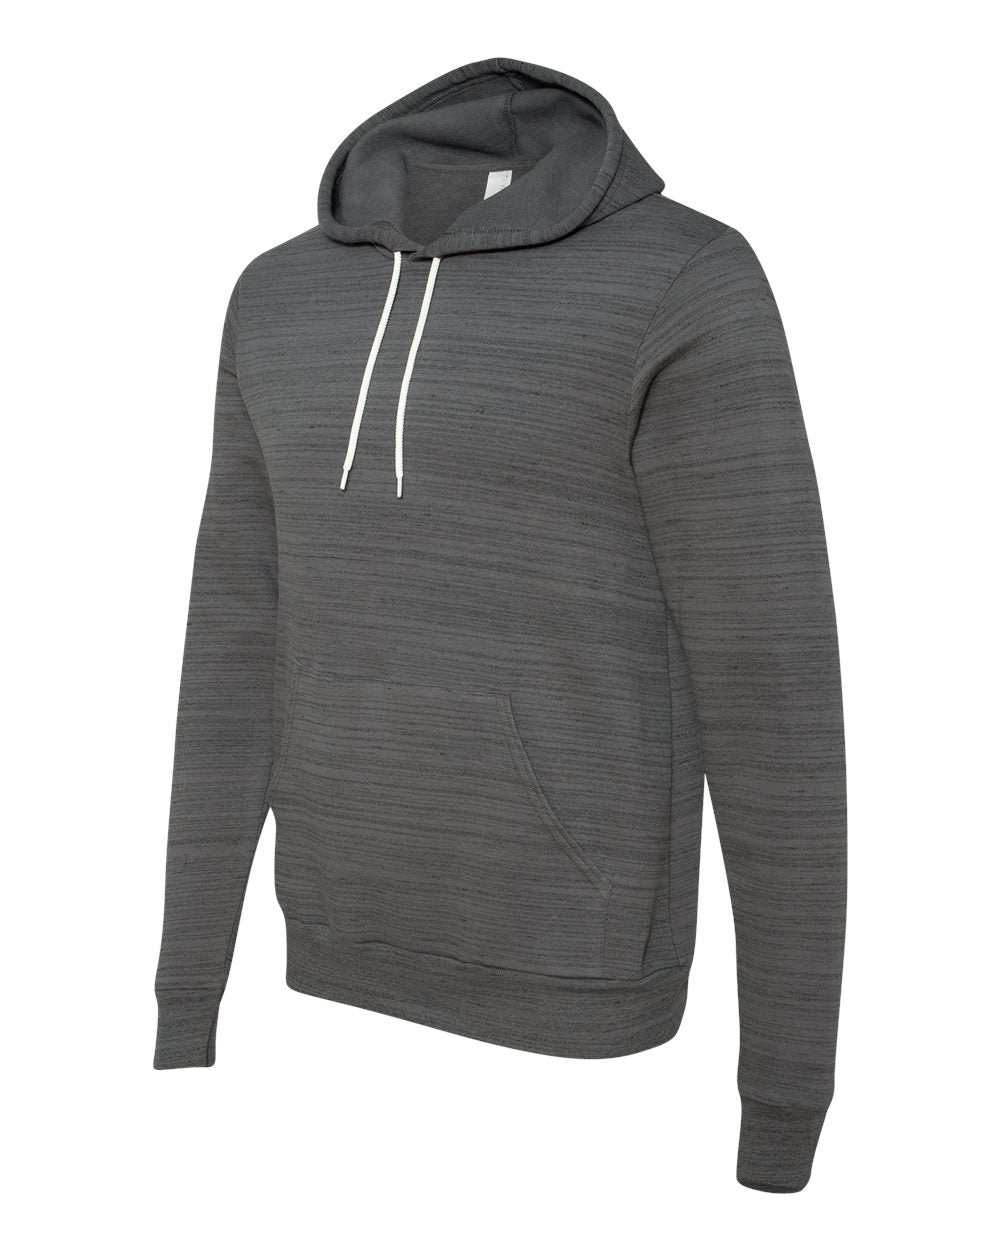 Bella + Canvas, Unisex Hooded Pullover Sweatshirt - $$